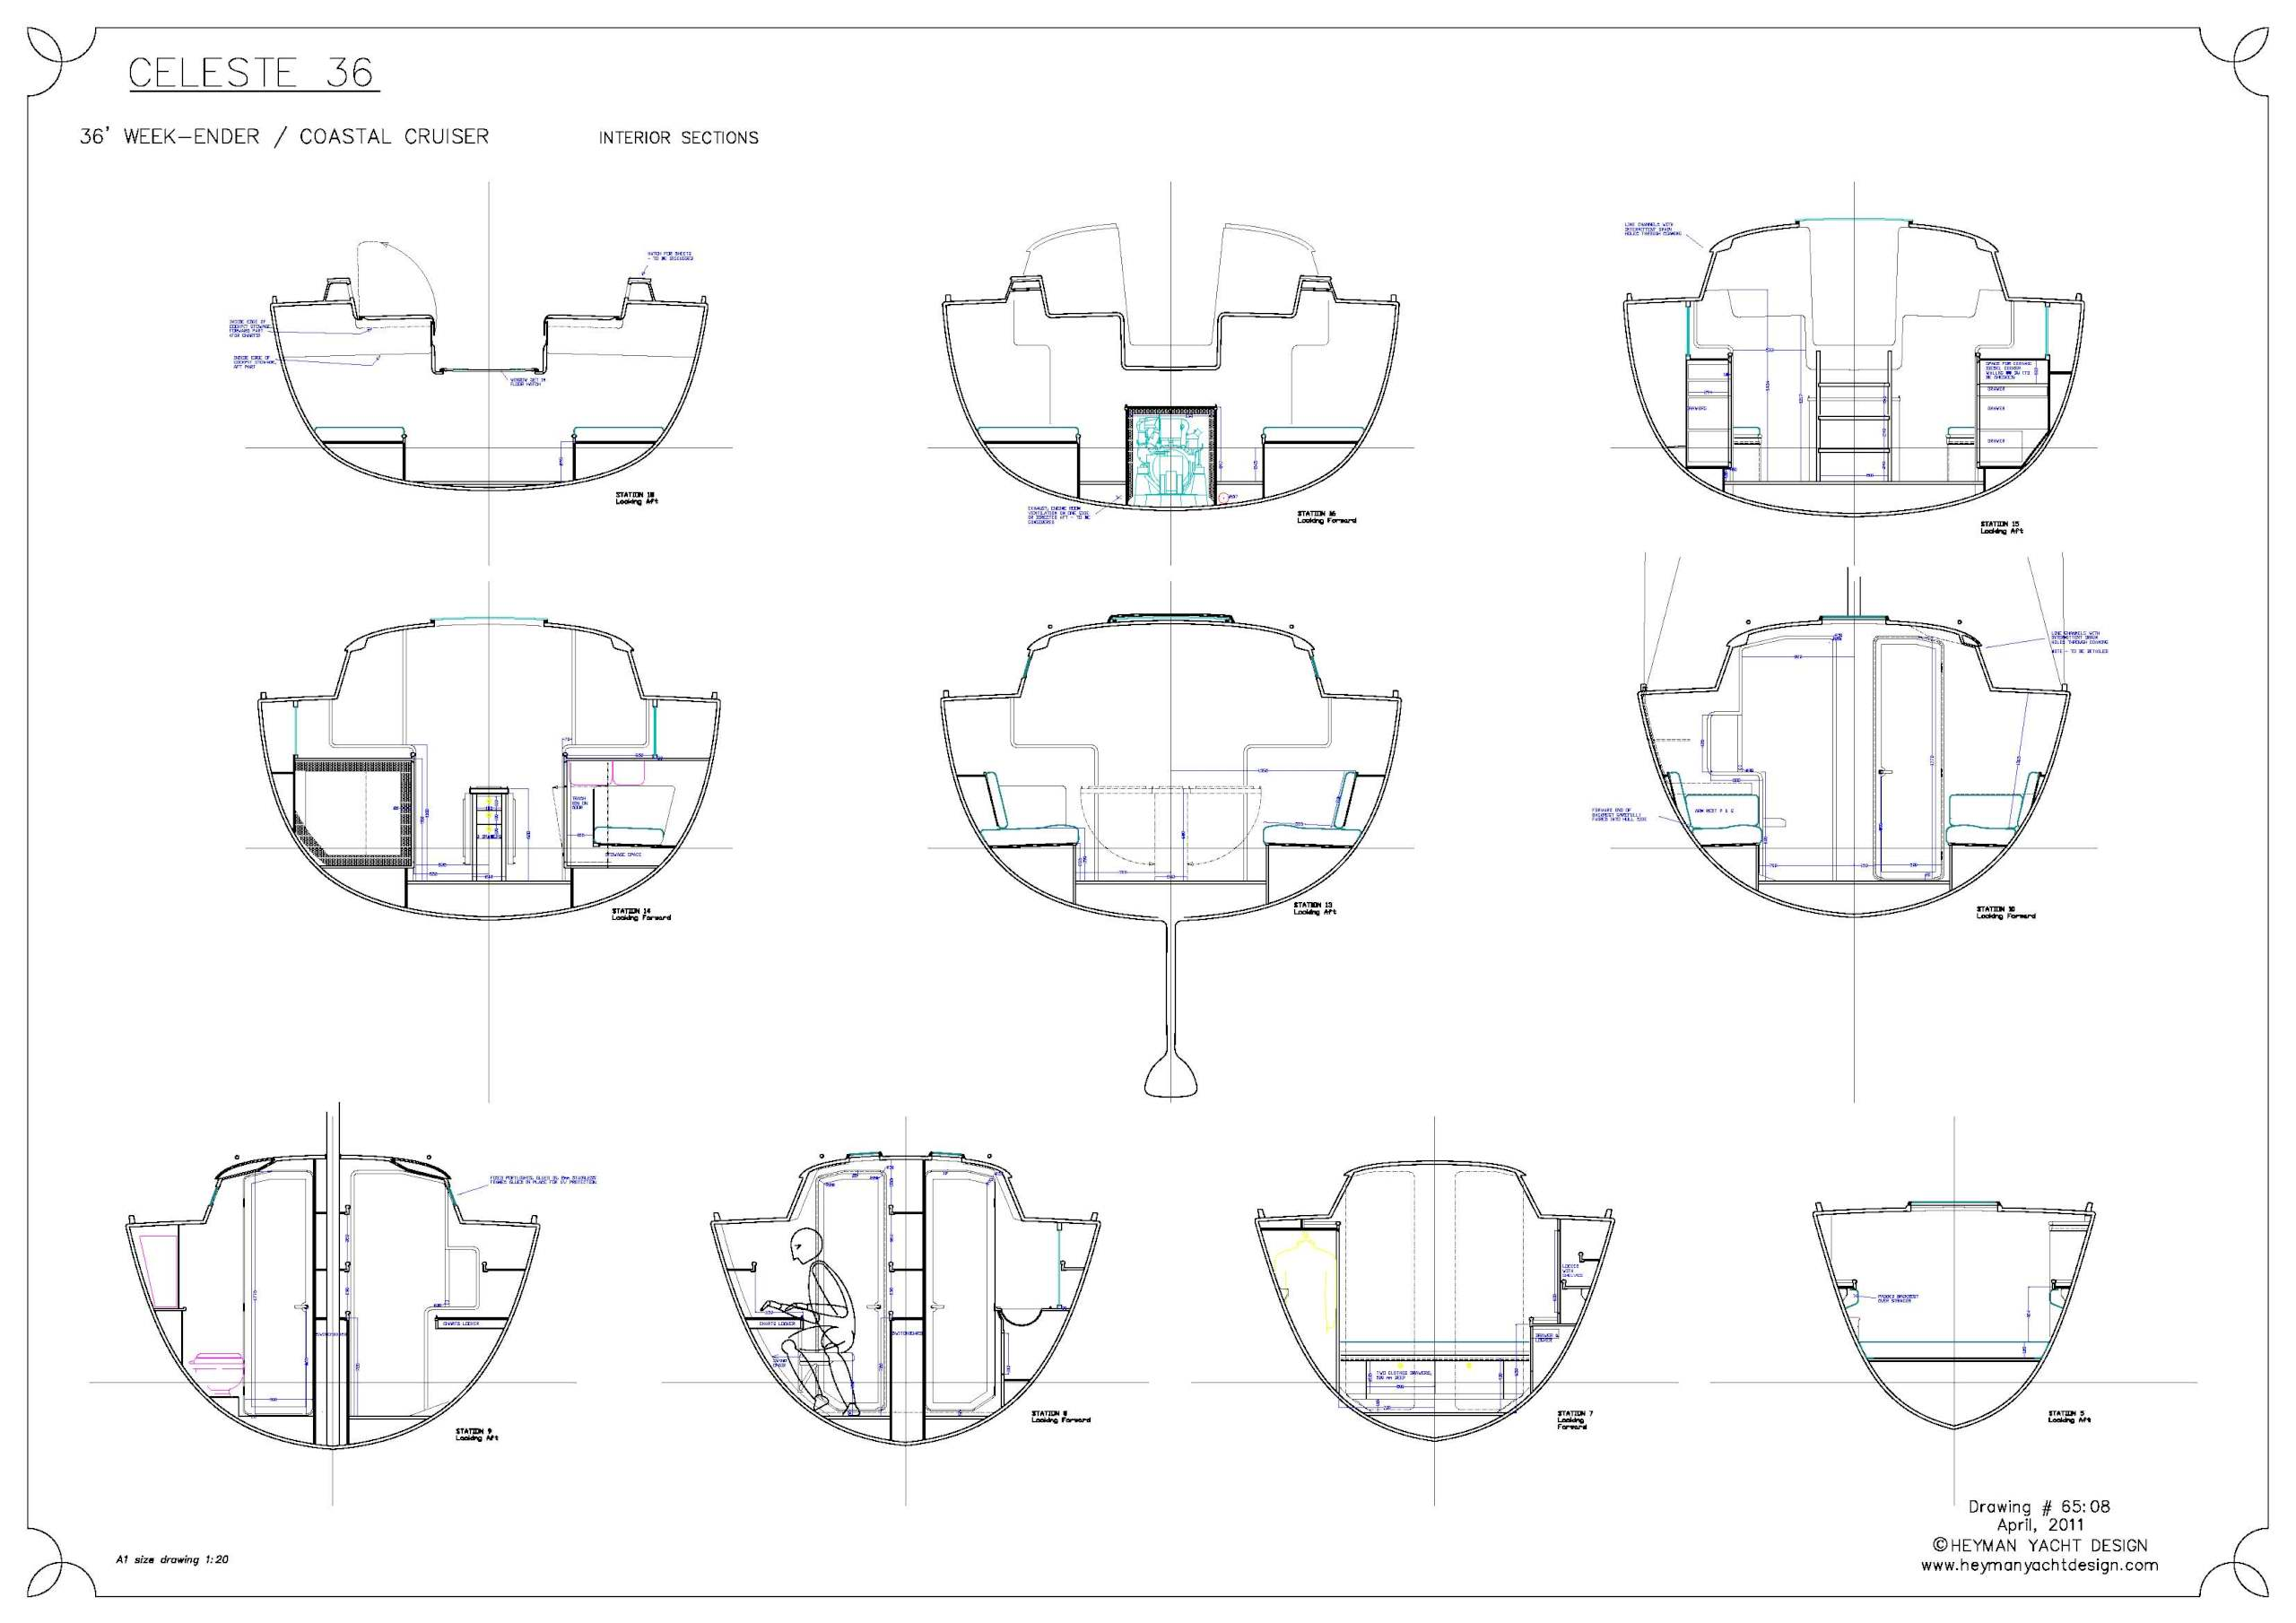 Celeste 36 interior sections